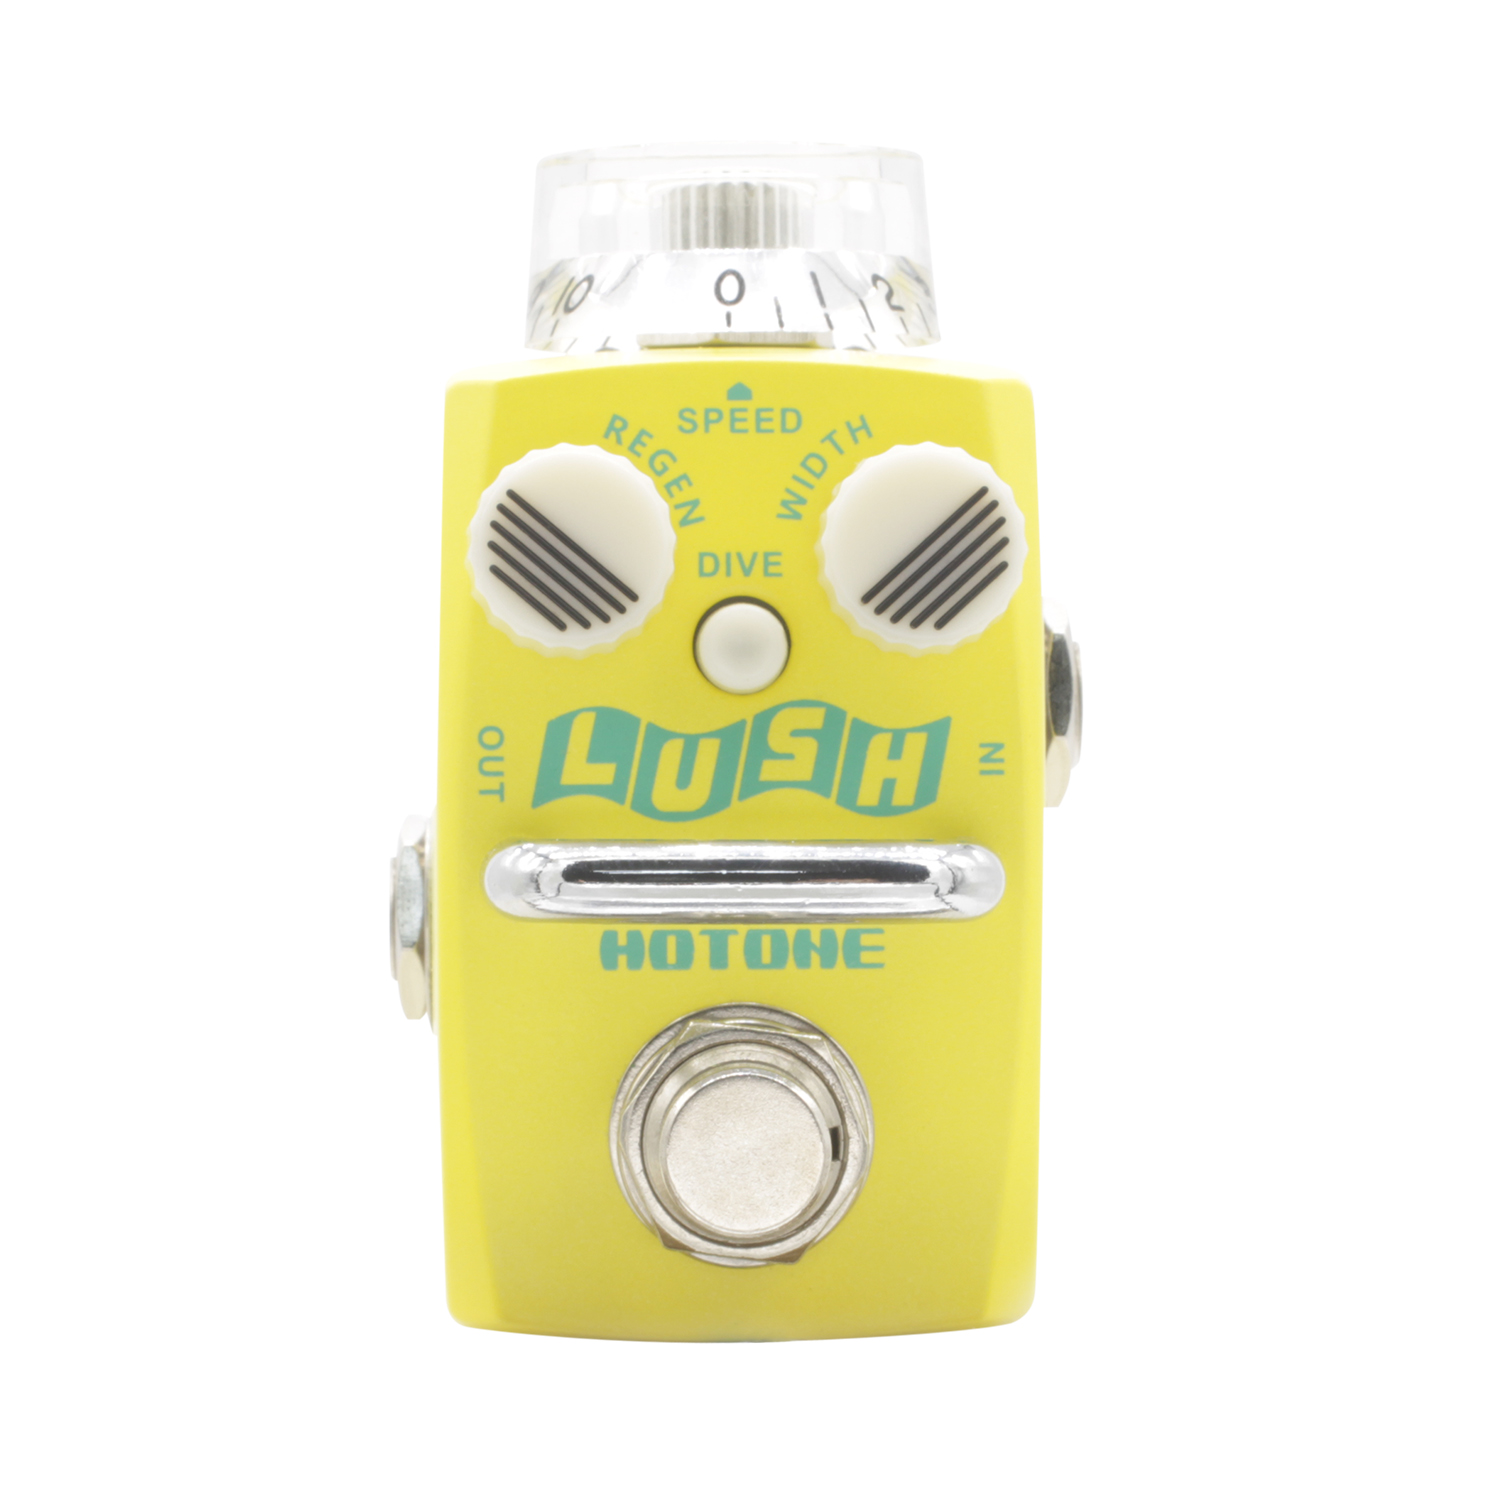 Hotone Lush Flanger Guitar Effect Pedal True Bypass Originally Achieved Effects for Electric Guitar Skyline Series mooer ensemble queen bass chorus effect pedal mini guitar effects true bypass with free connector and footswitch topper